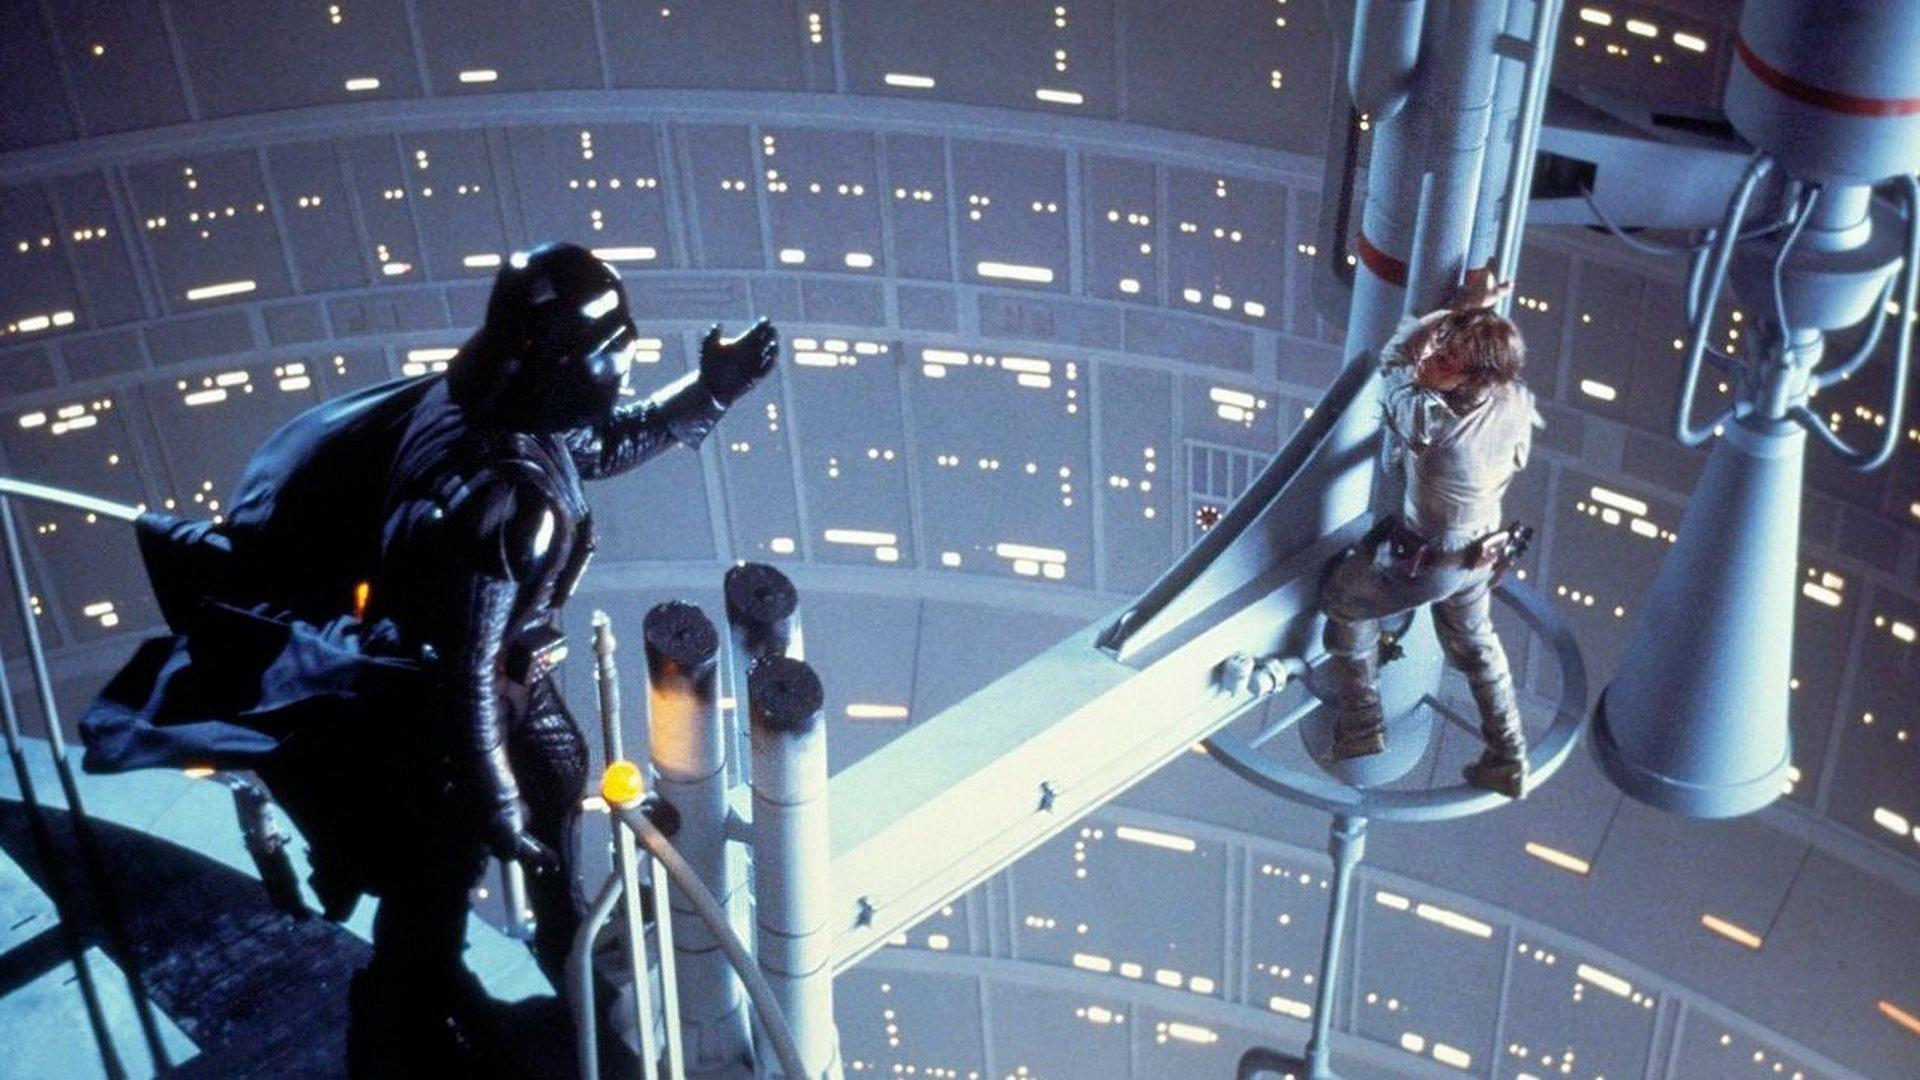 comPOSERS Episode 96 – Star Wars V: The Empire Strikes Back